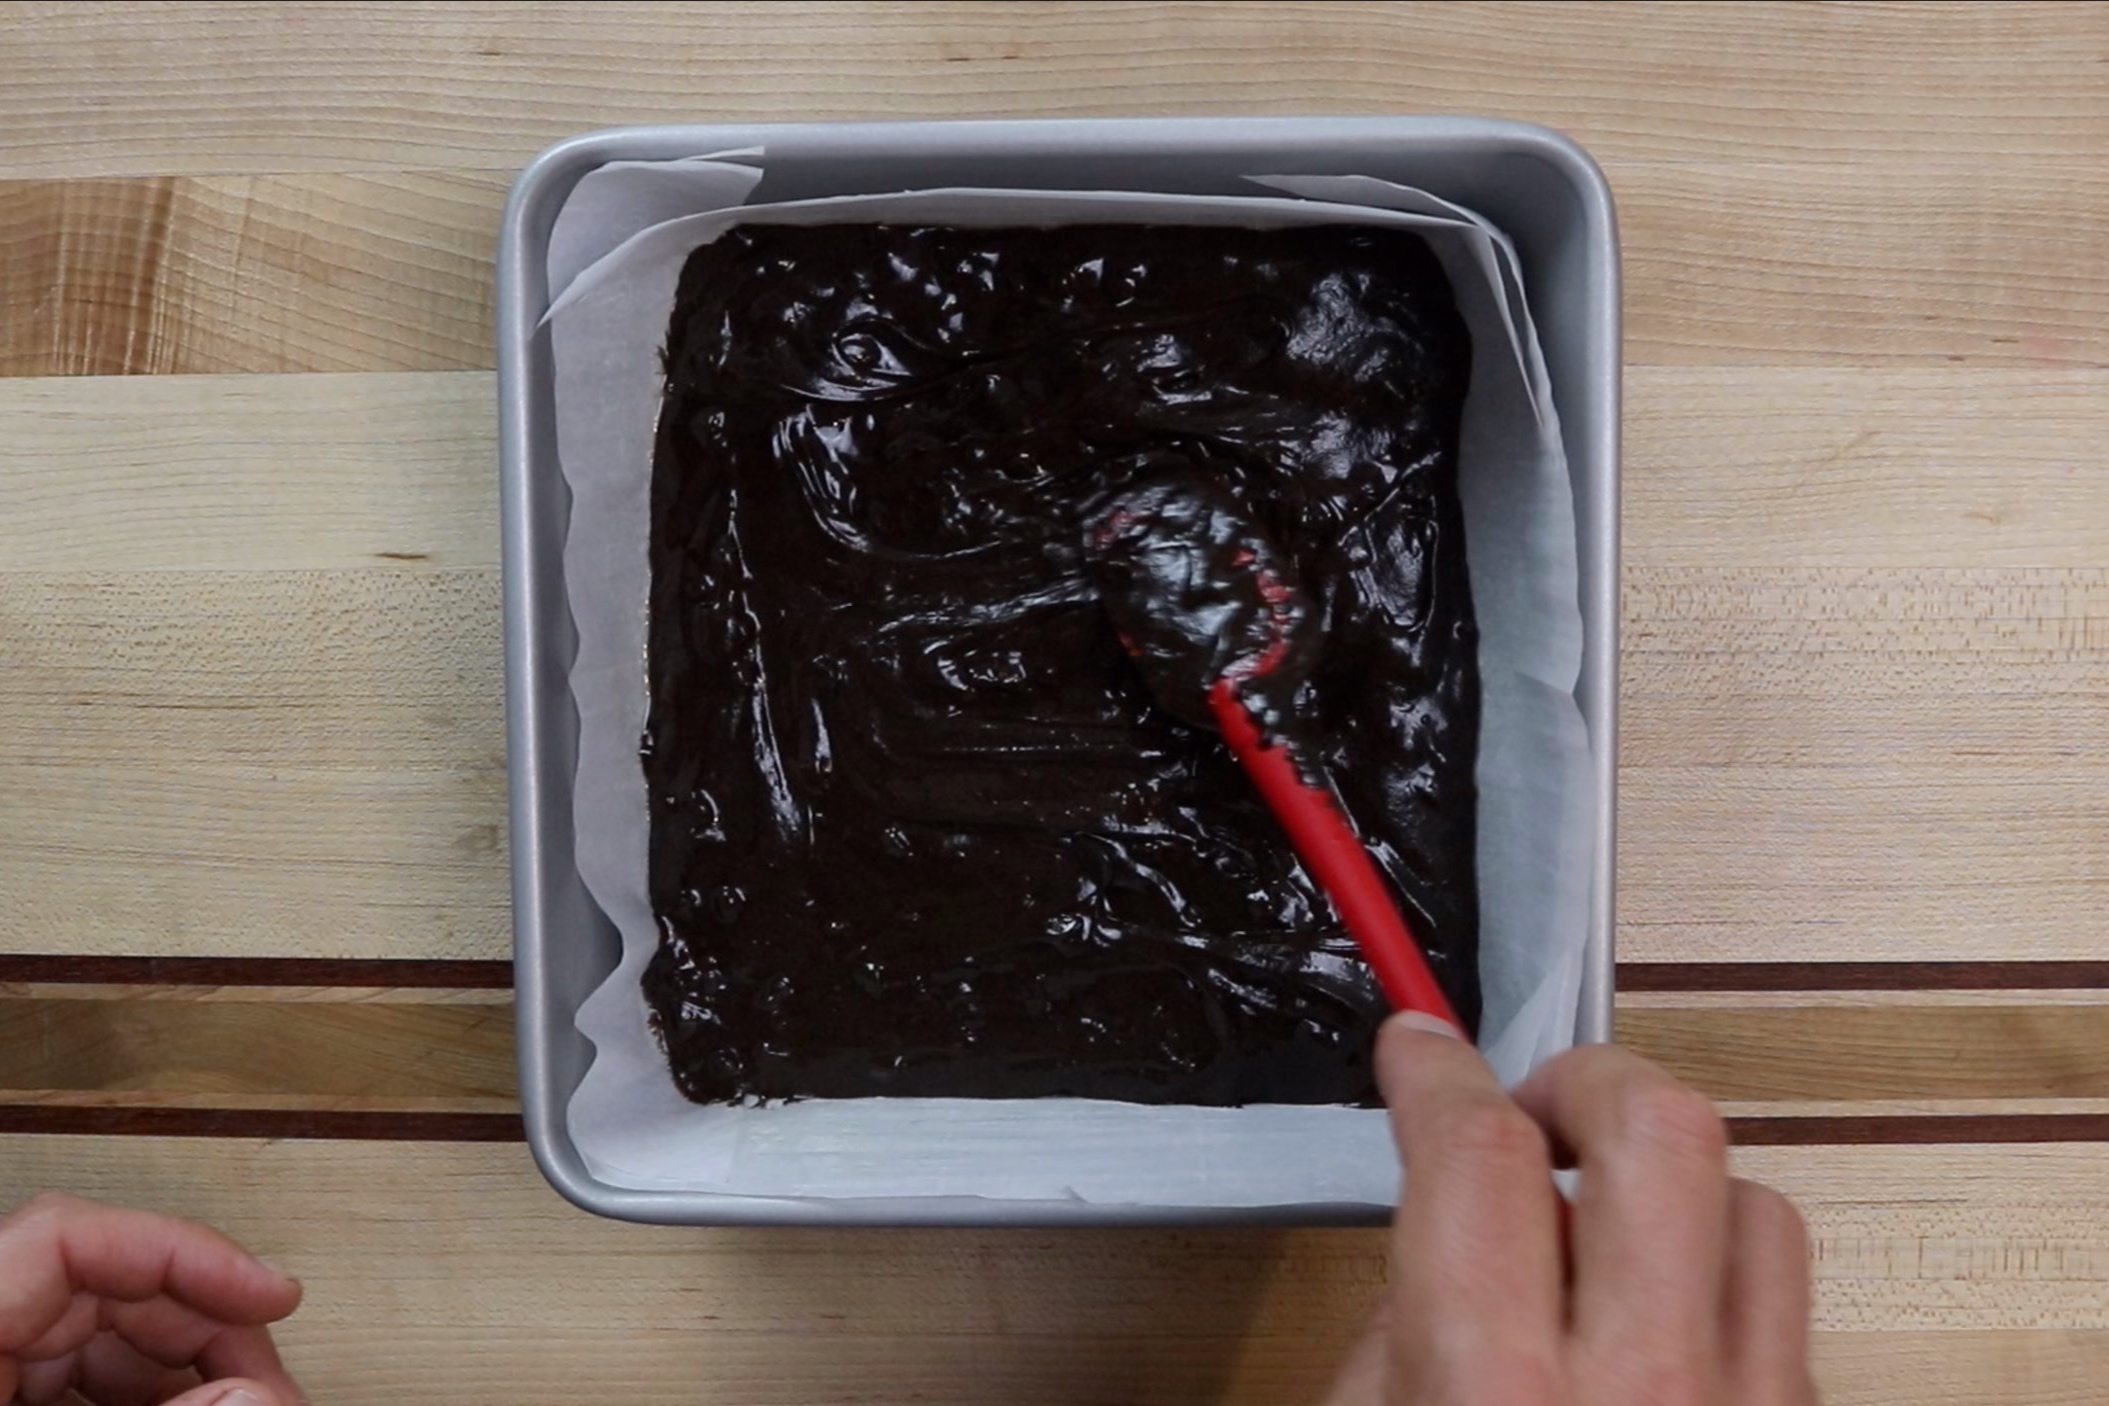 7. Pour the batter into the pan and spread evenly. -